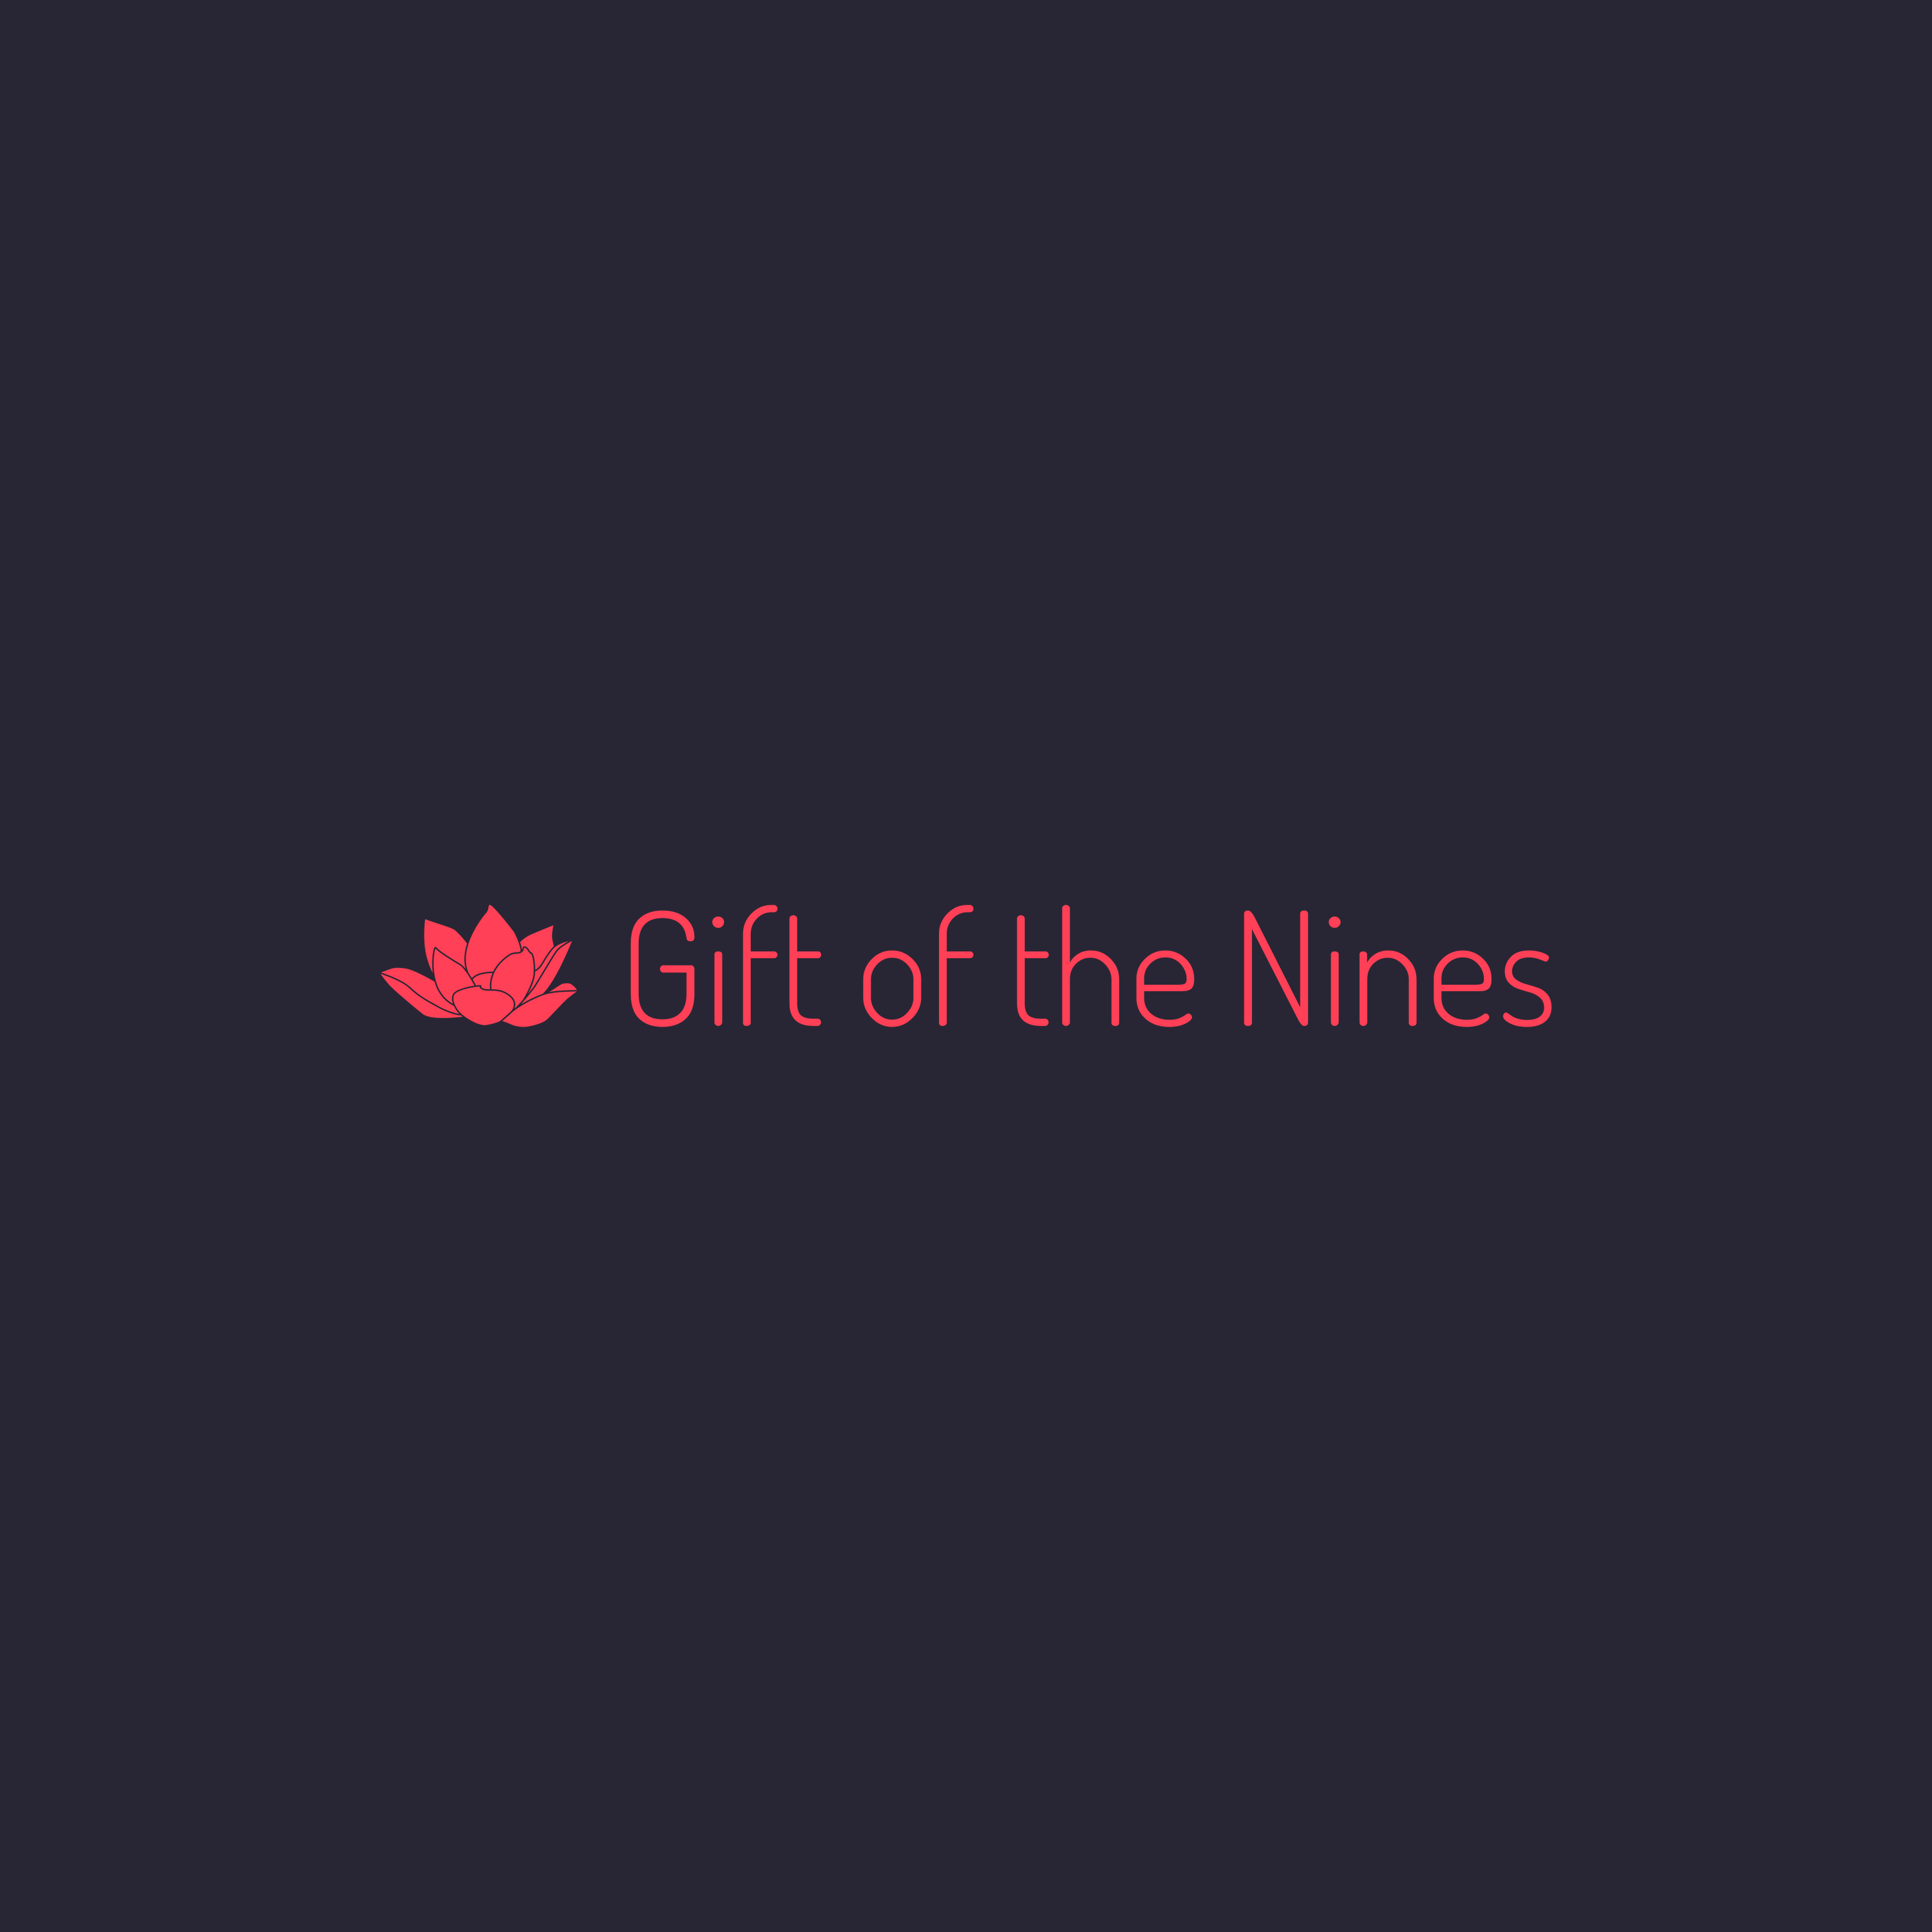 Gift of the Nines